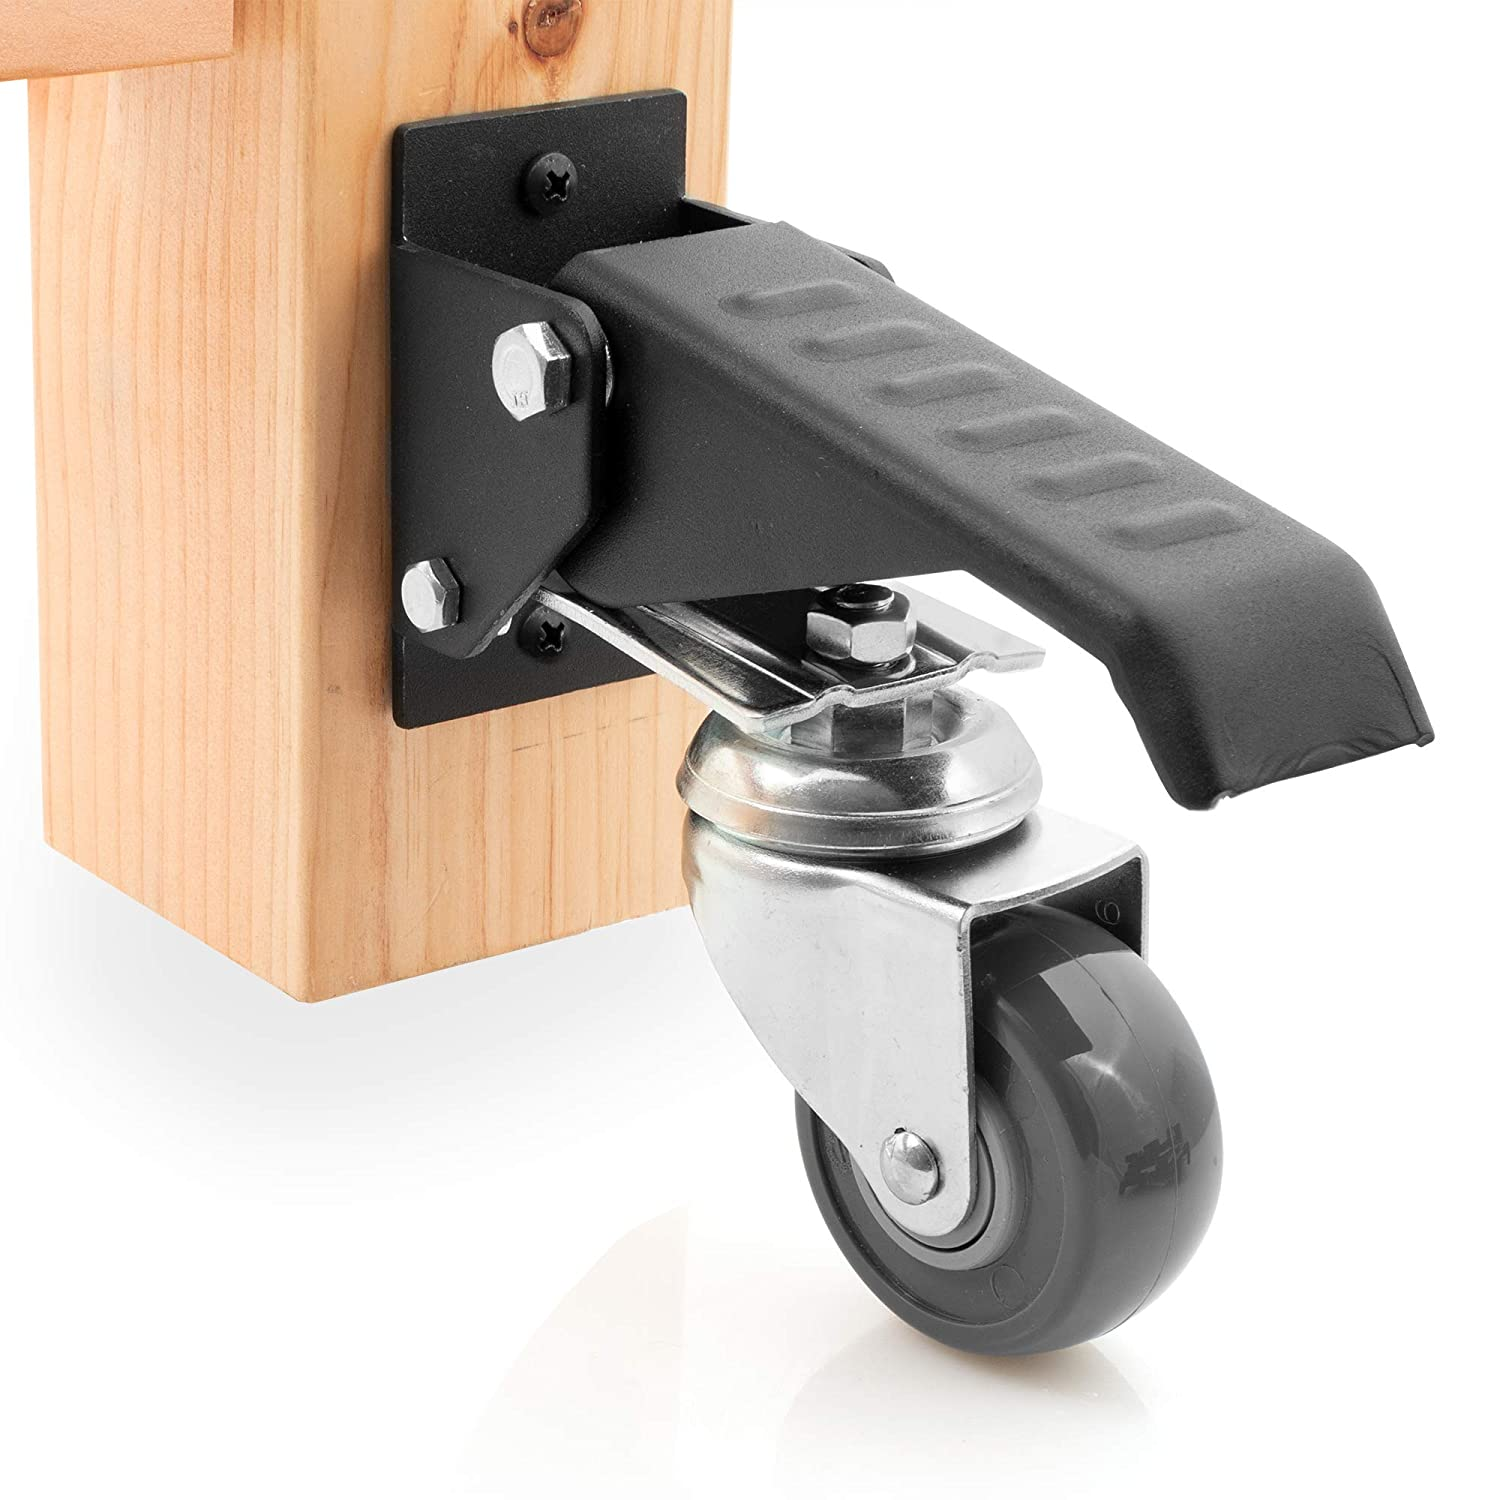 Prime Workbench Caster Kit 4 Heavy Duty Retractable Casters With Urethane Wheels Designed To Lift Lower Workbenches Machinery Tables 840 Lb Total Weight Gmtry Best Dining Table And Chair Ideas Images Gmtryco